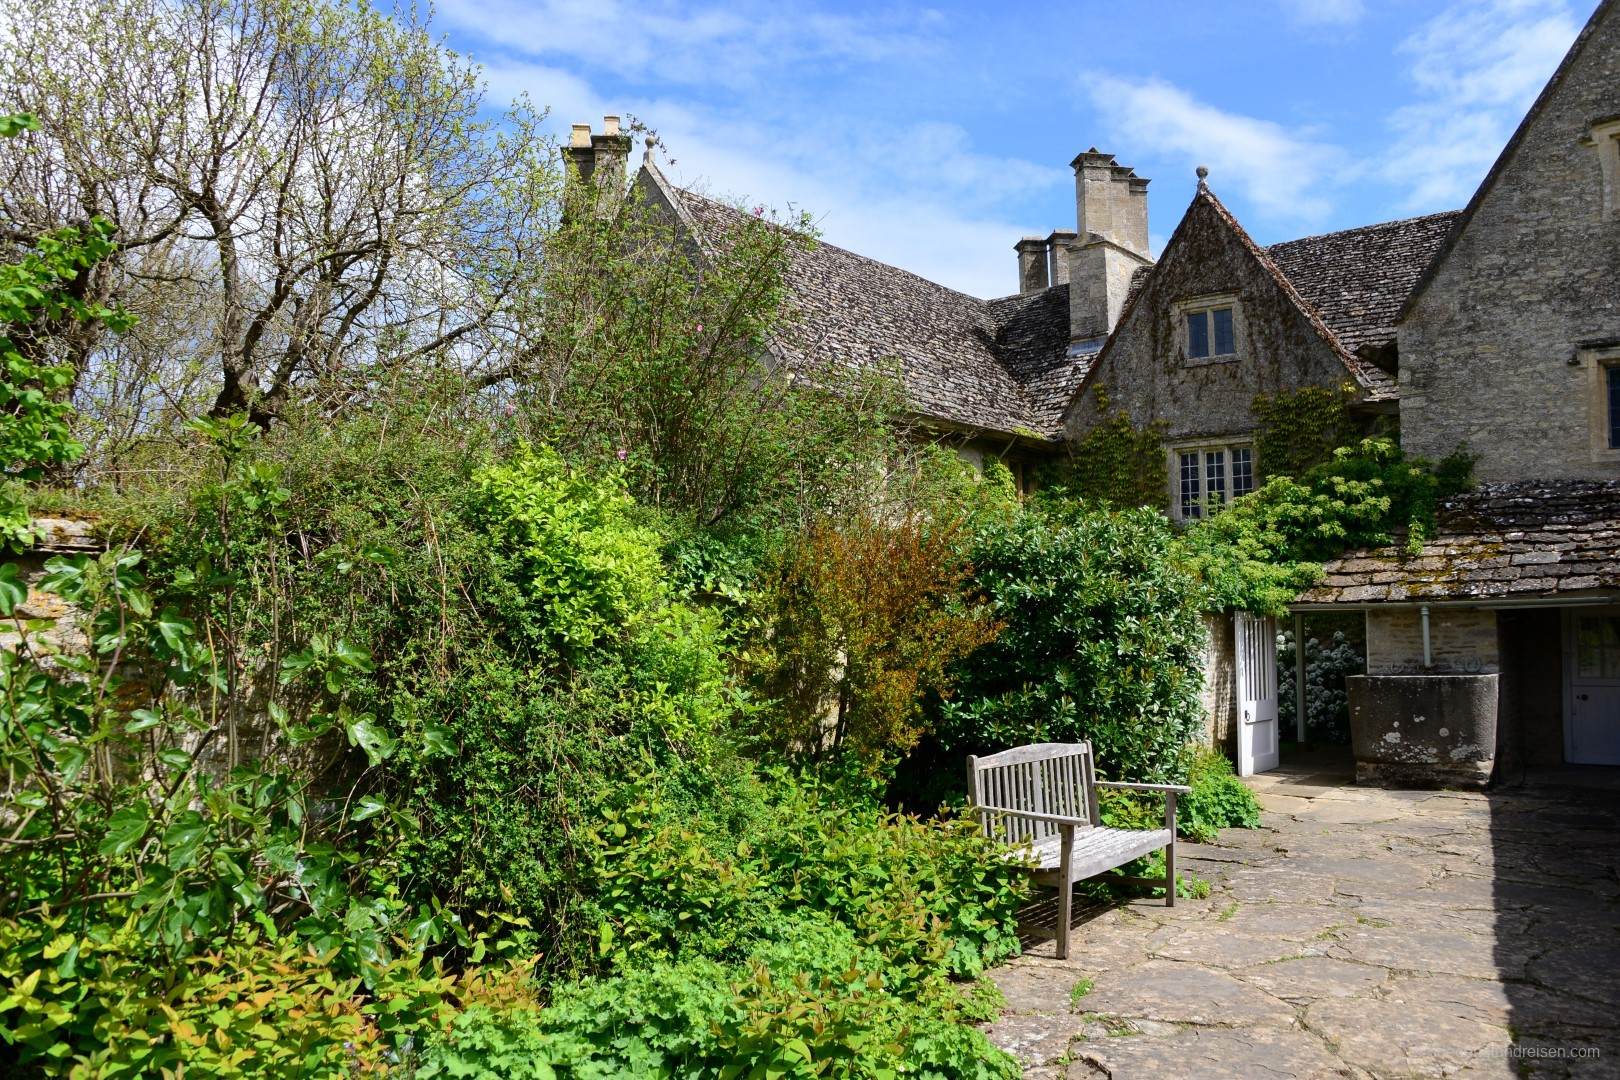 Kelmscott Manor in Oxfordshire